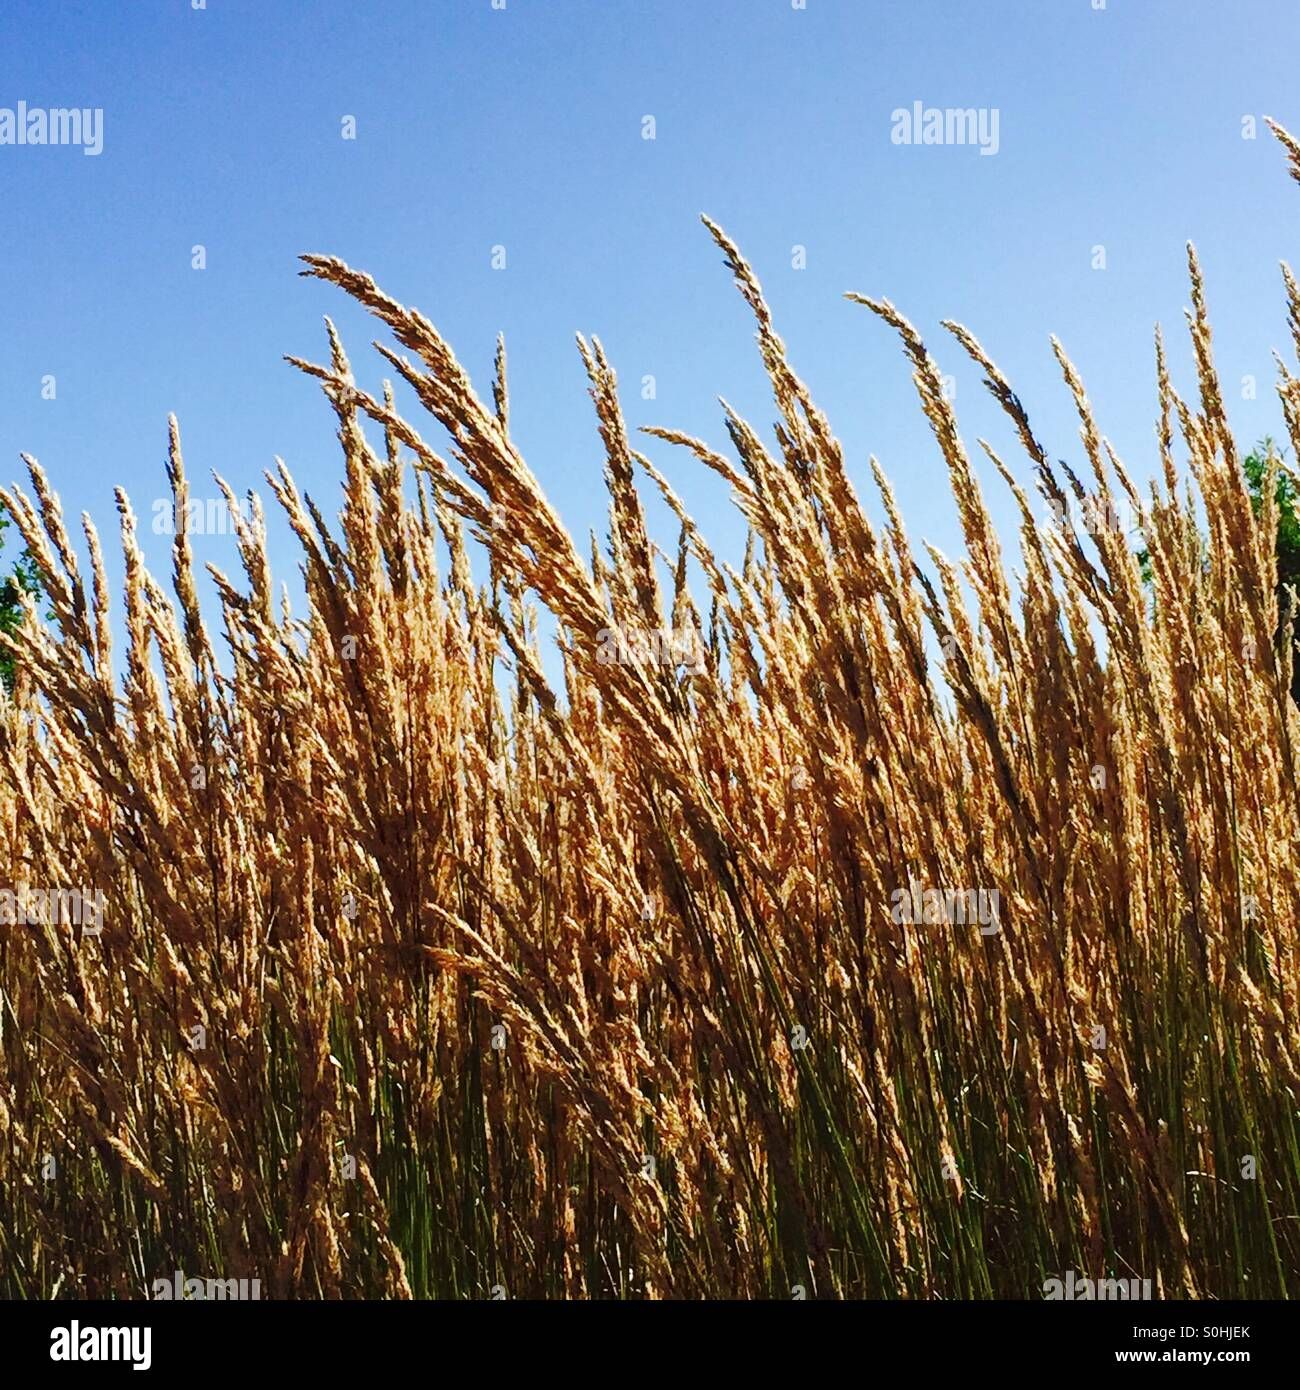 Ears of corn in the wind - Stock Image